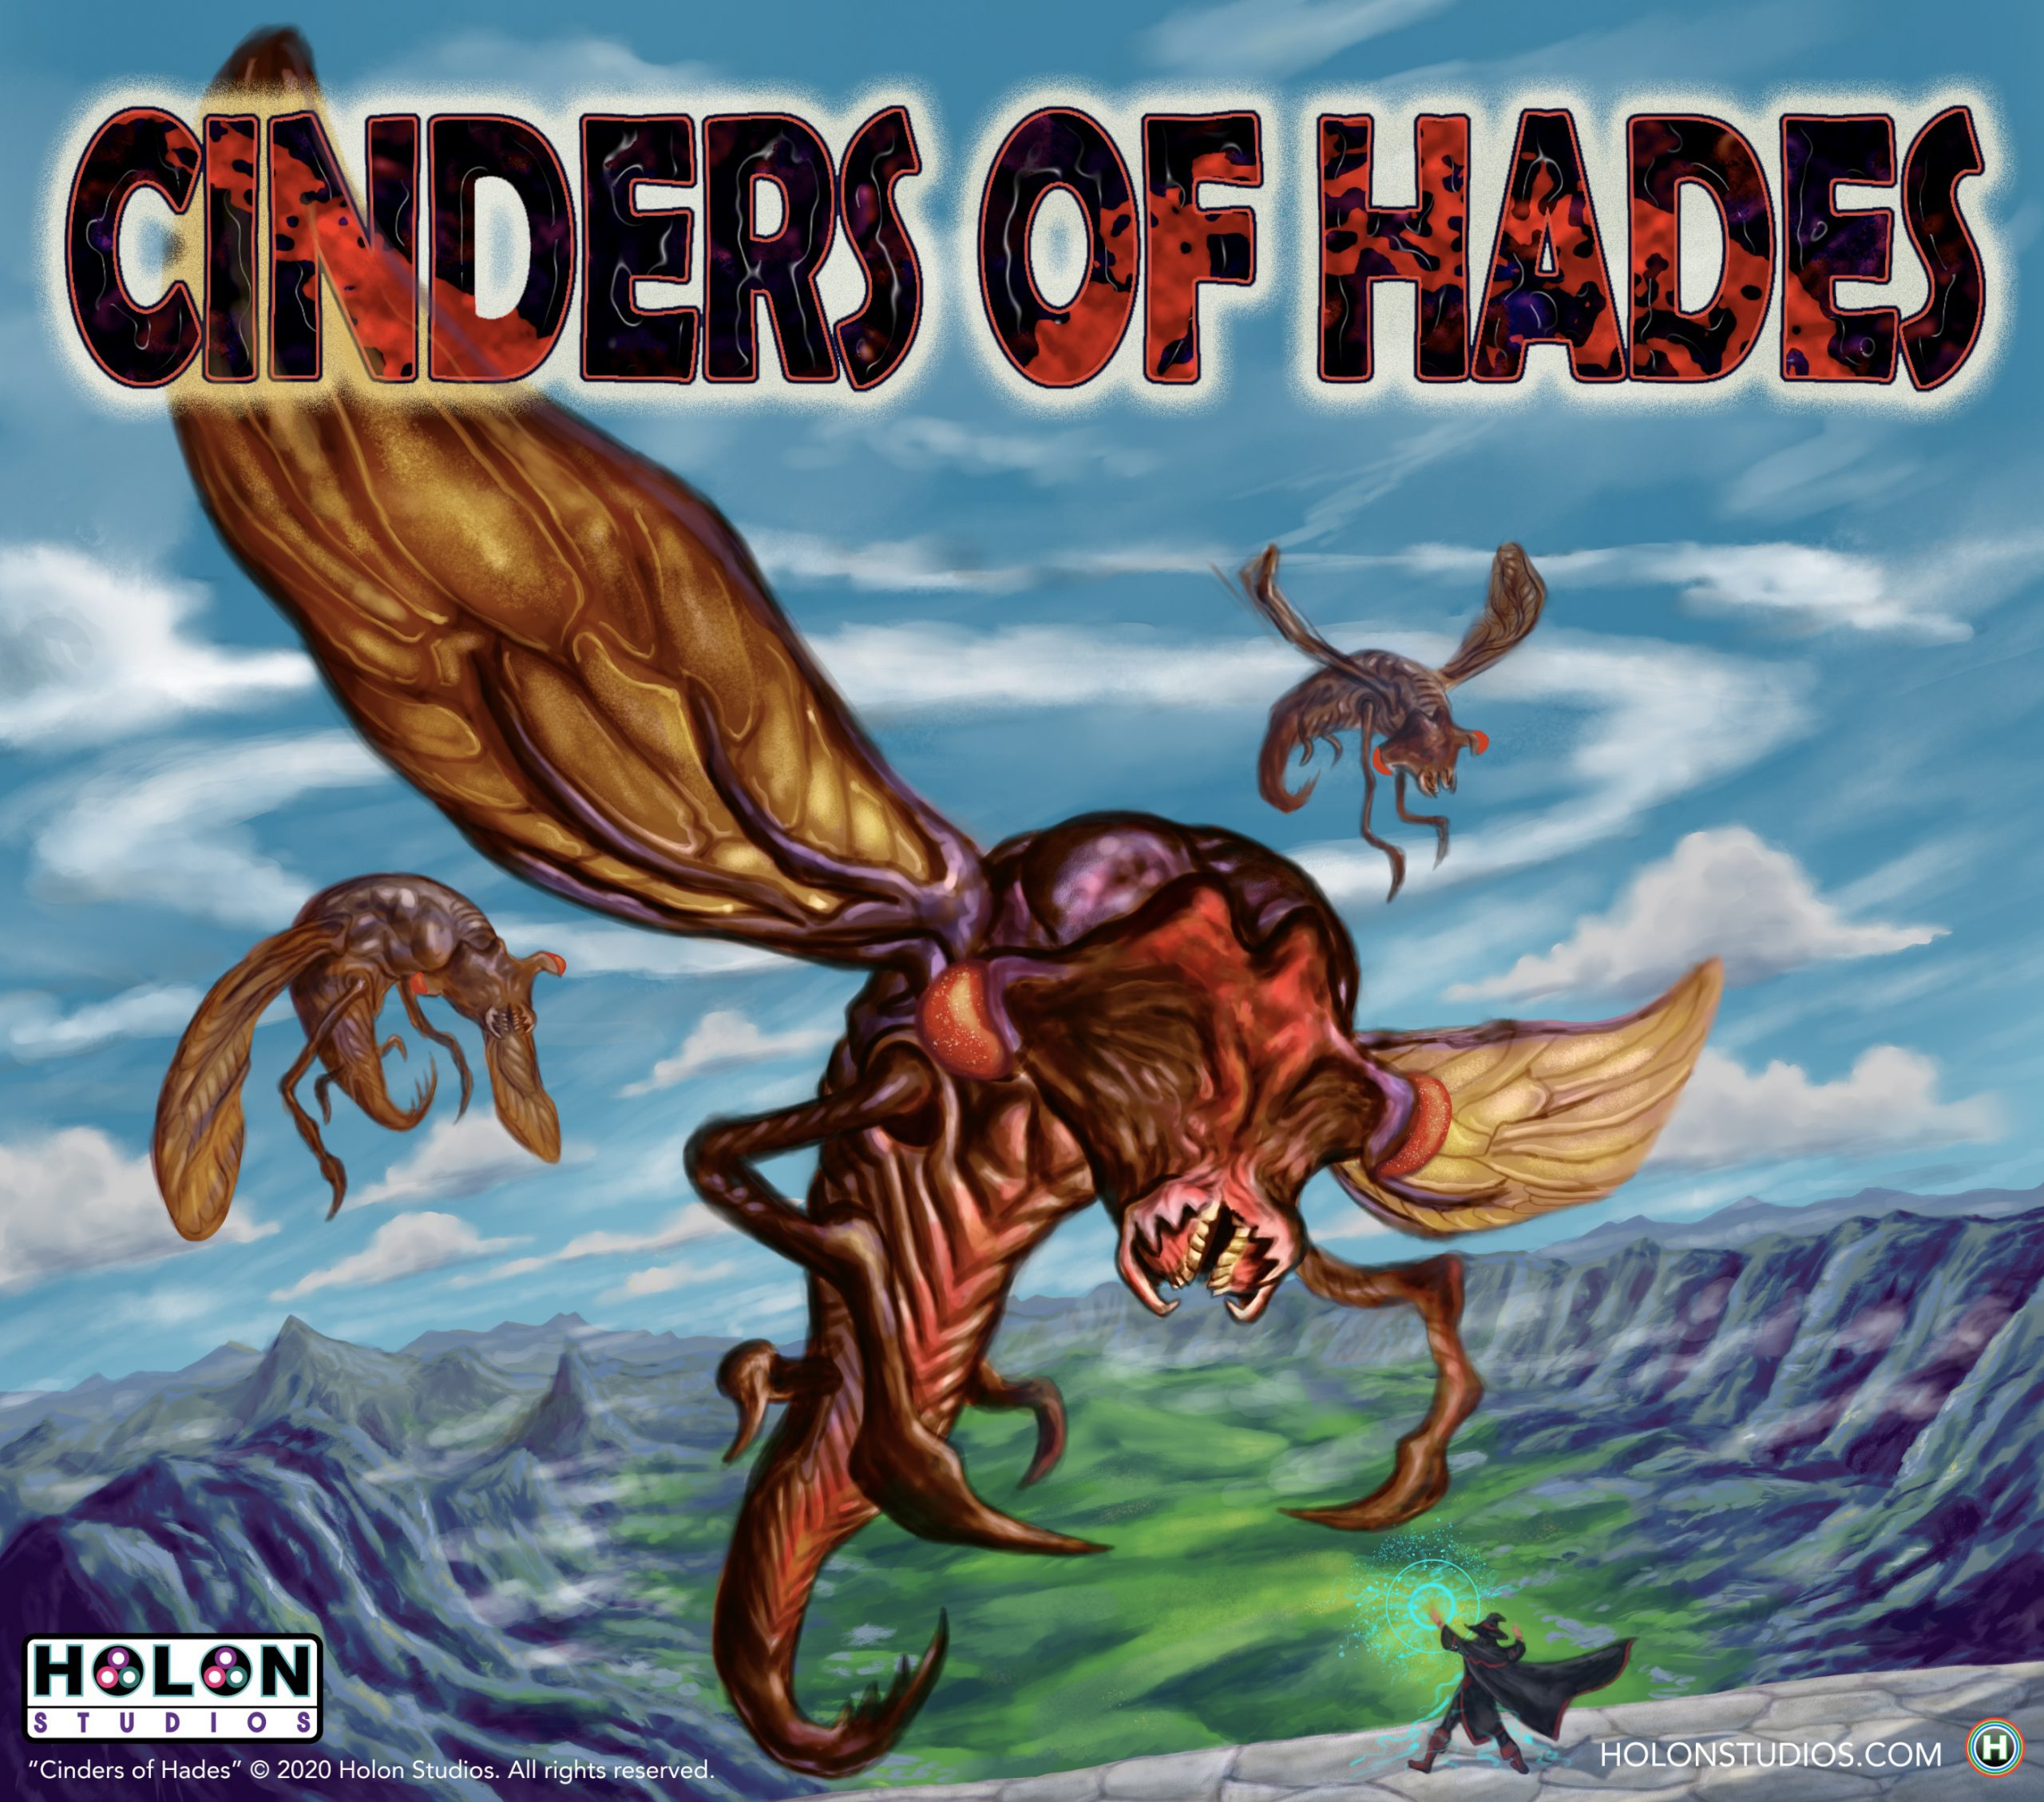 Cinders of Hades Hell Bugs concept art